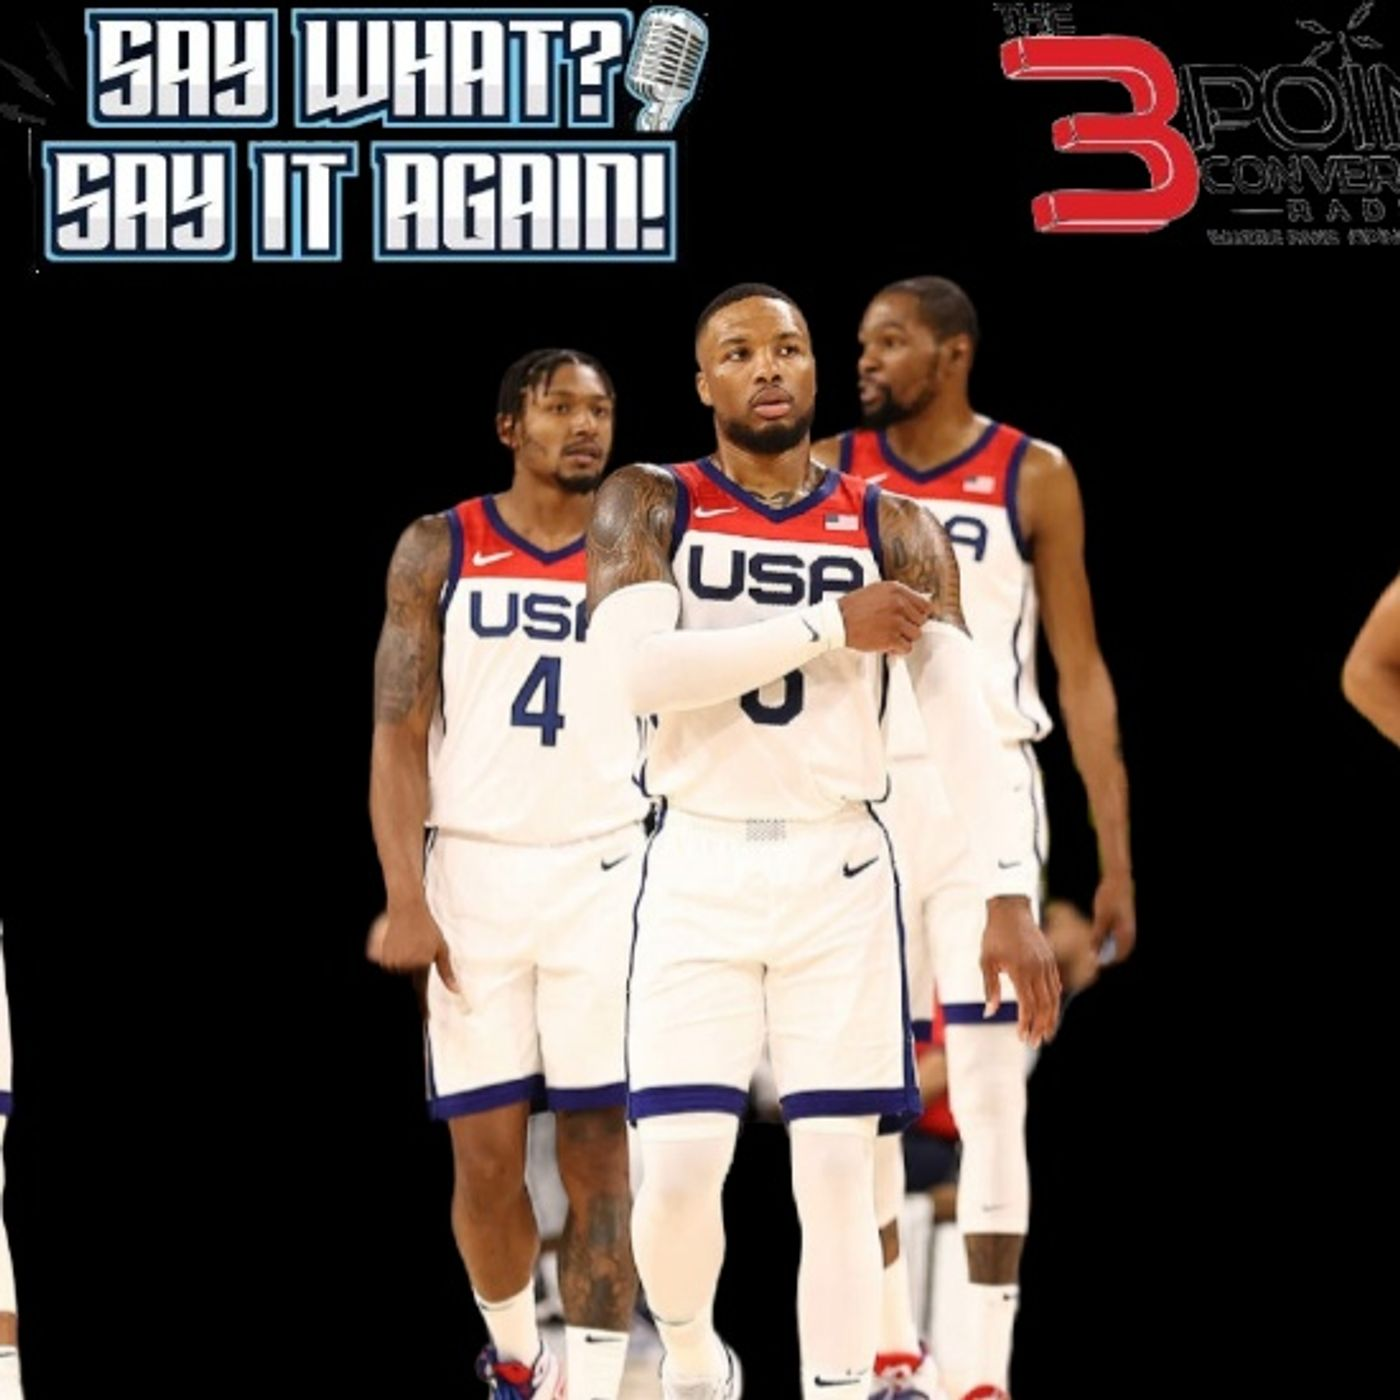 Say What Say It Again - Team USA and NBA Finals